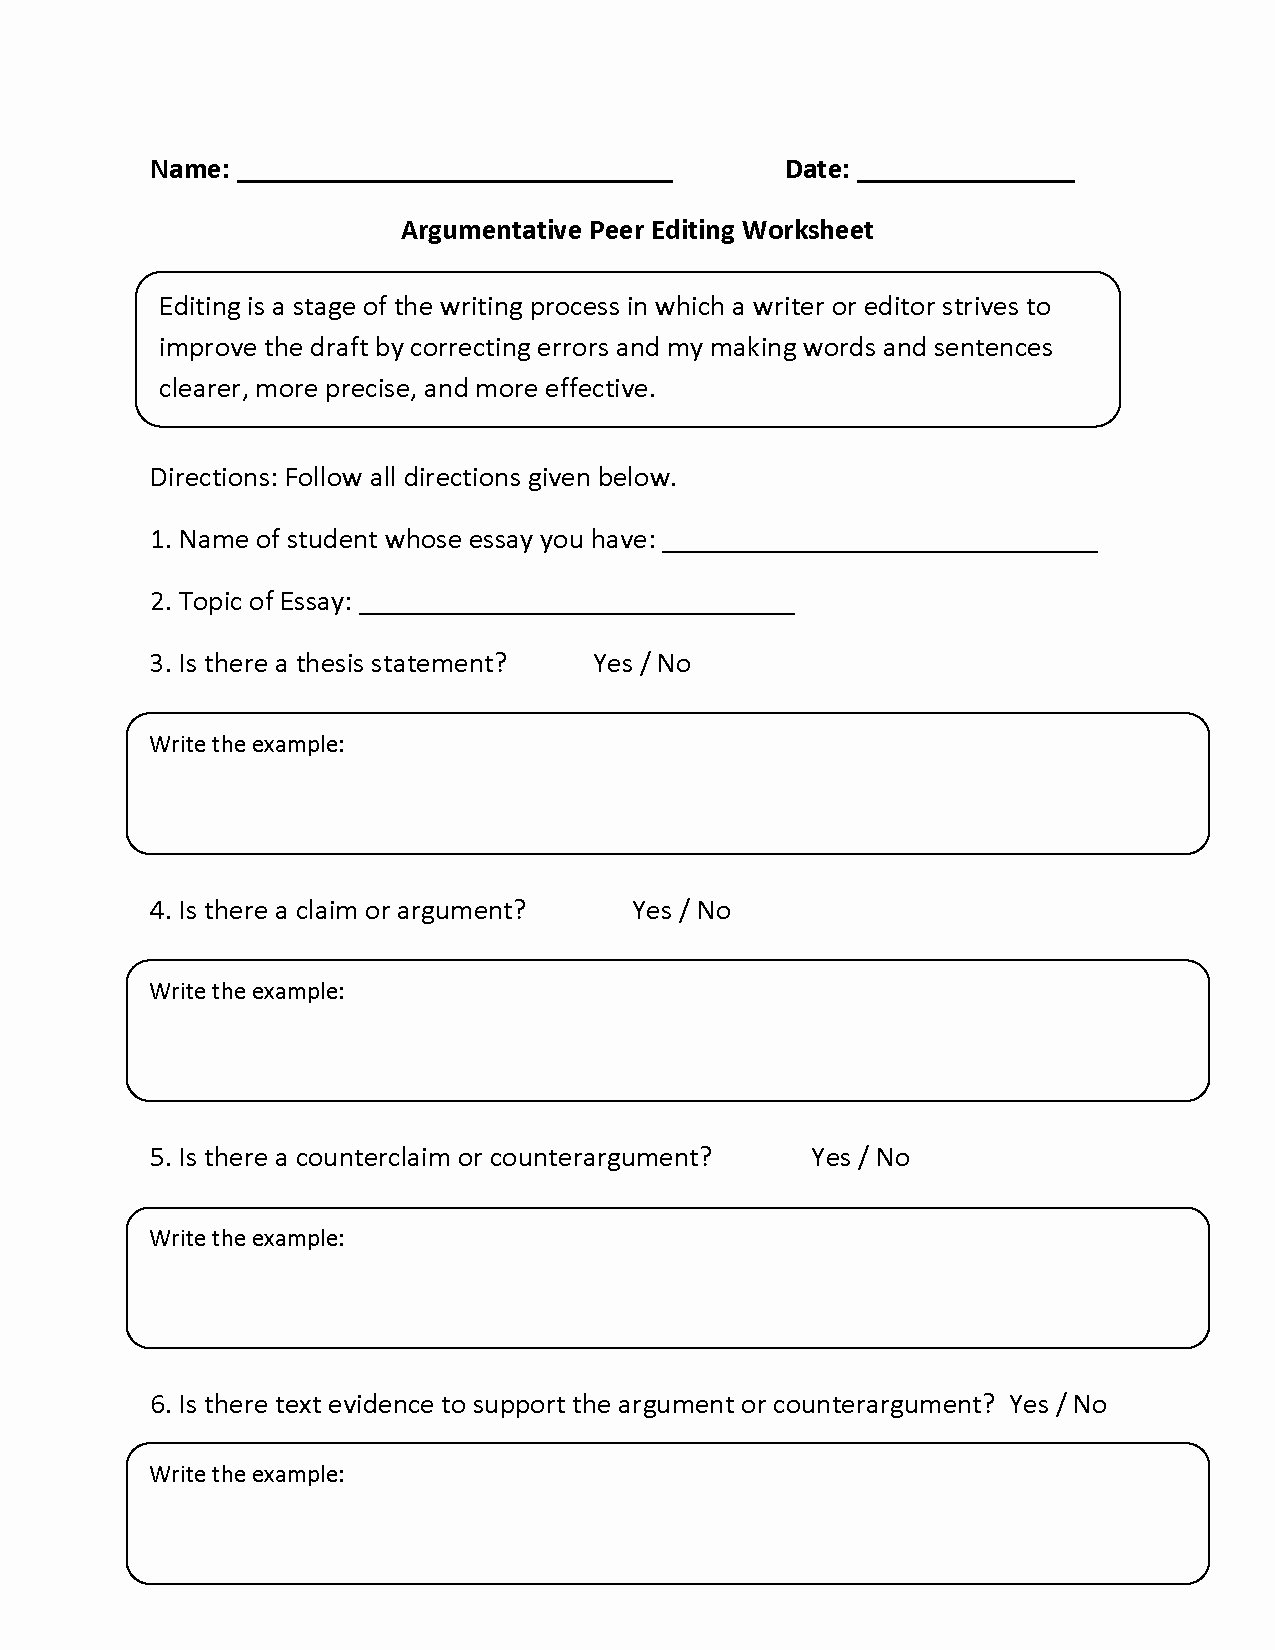 Paragraph Editing Worksheets 4th Grade Lovely Paragraph Editing Worksheets for 4th Grade Punctuation